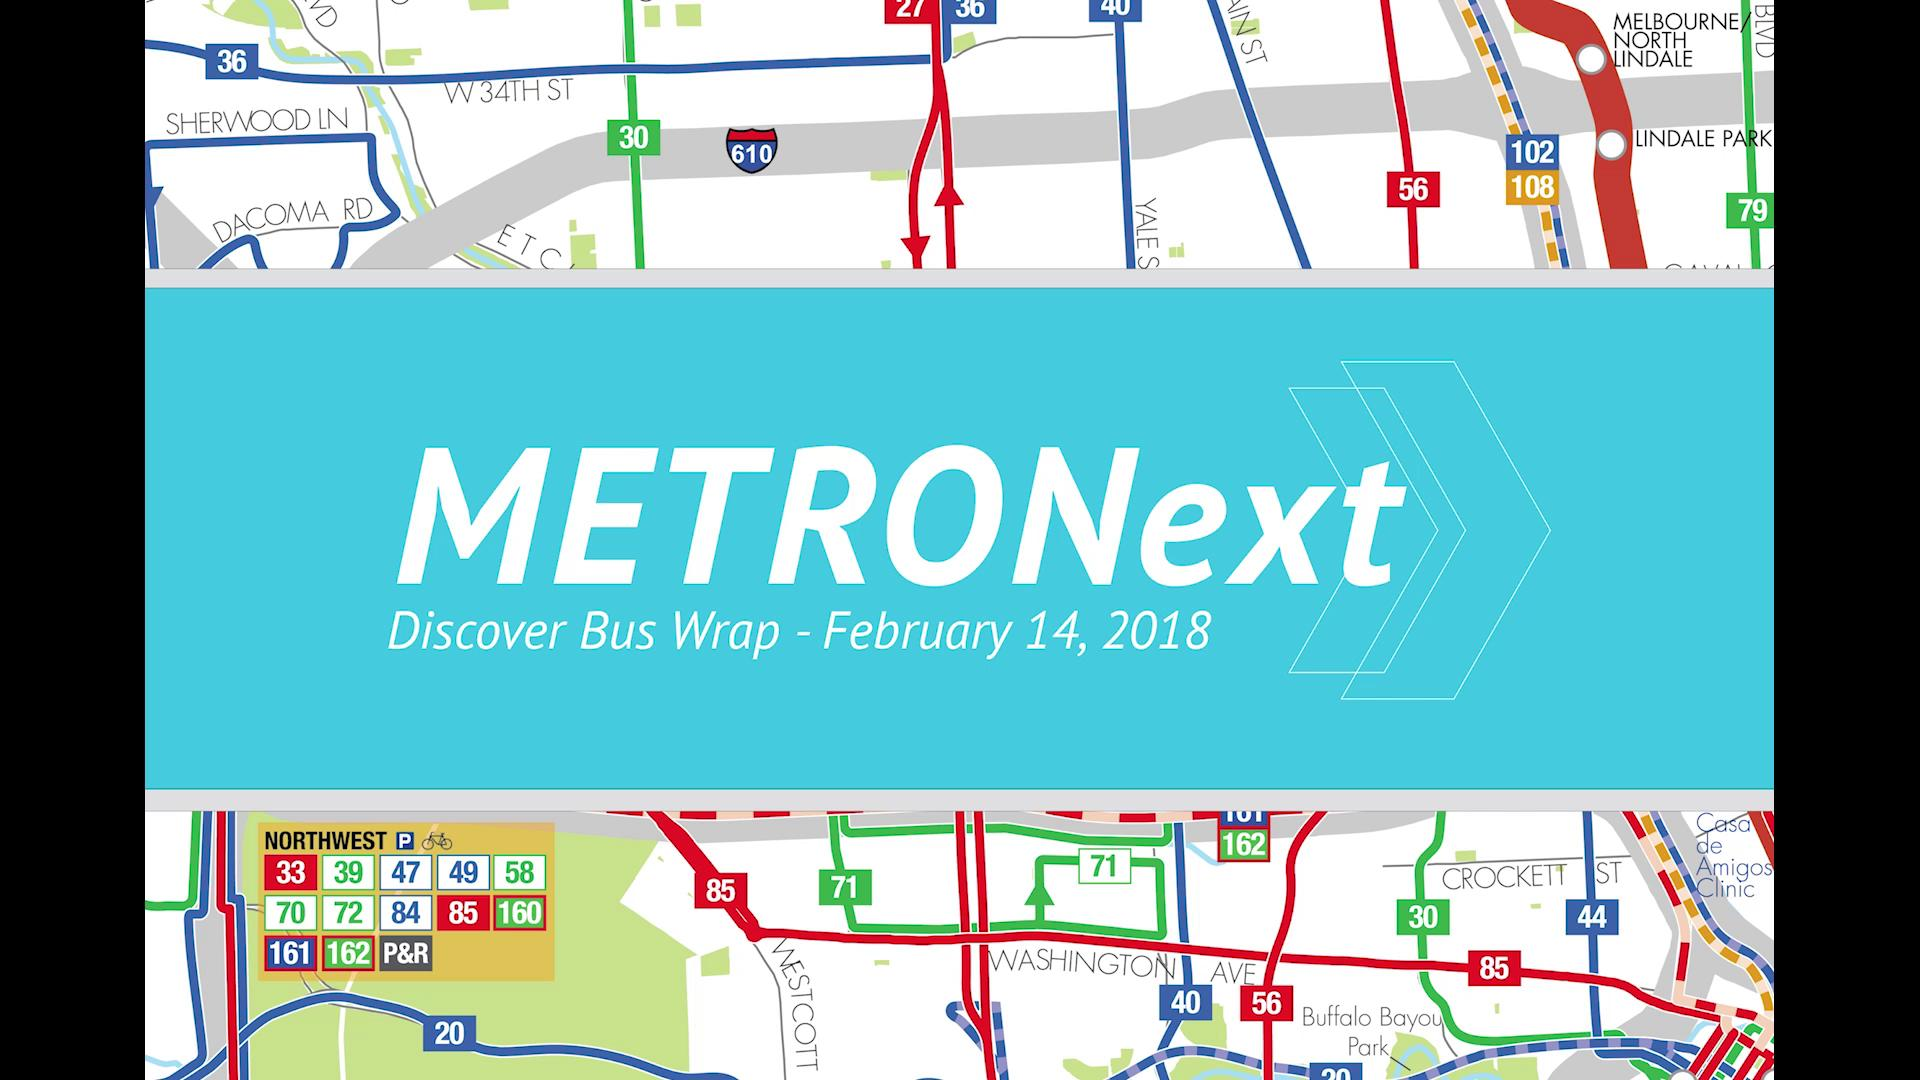 METRONext Bus Wrap